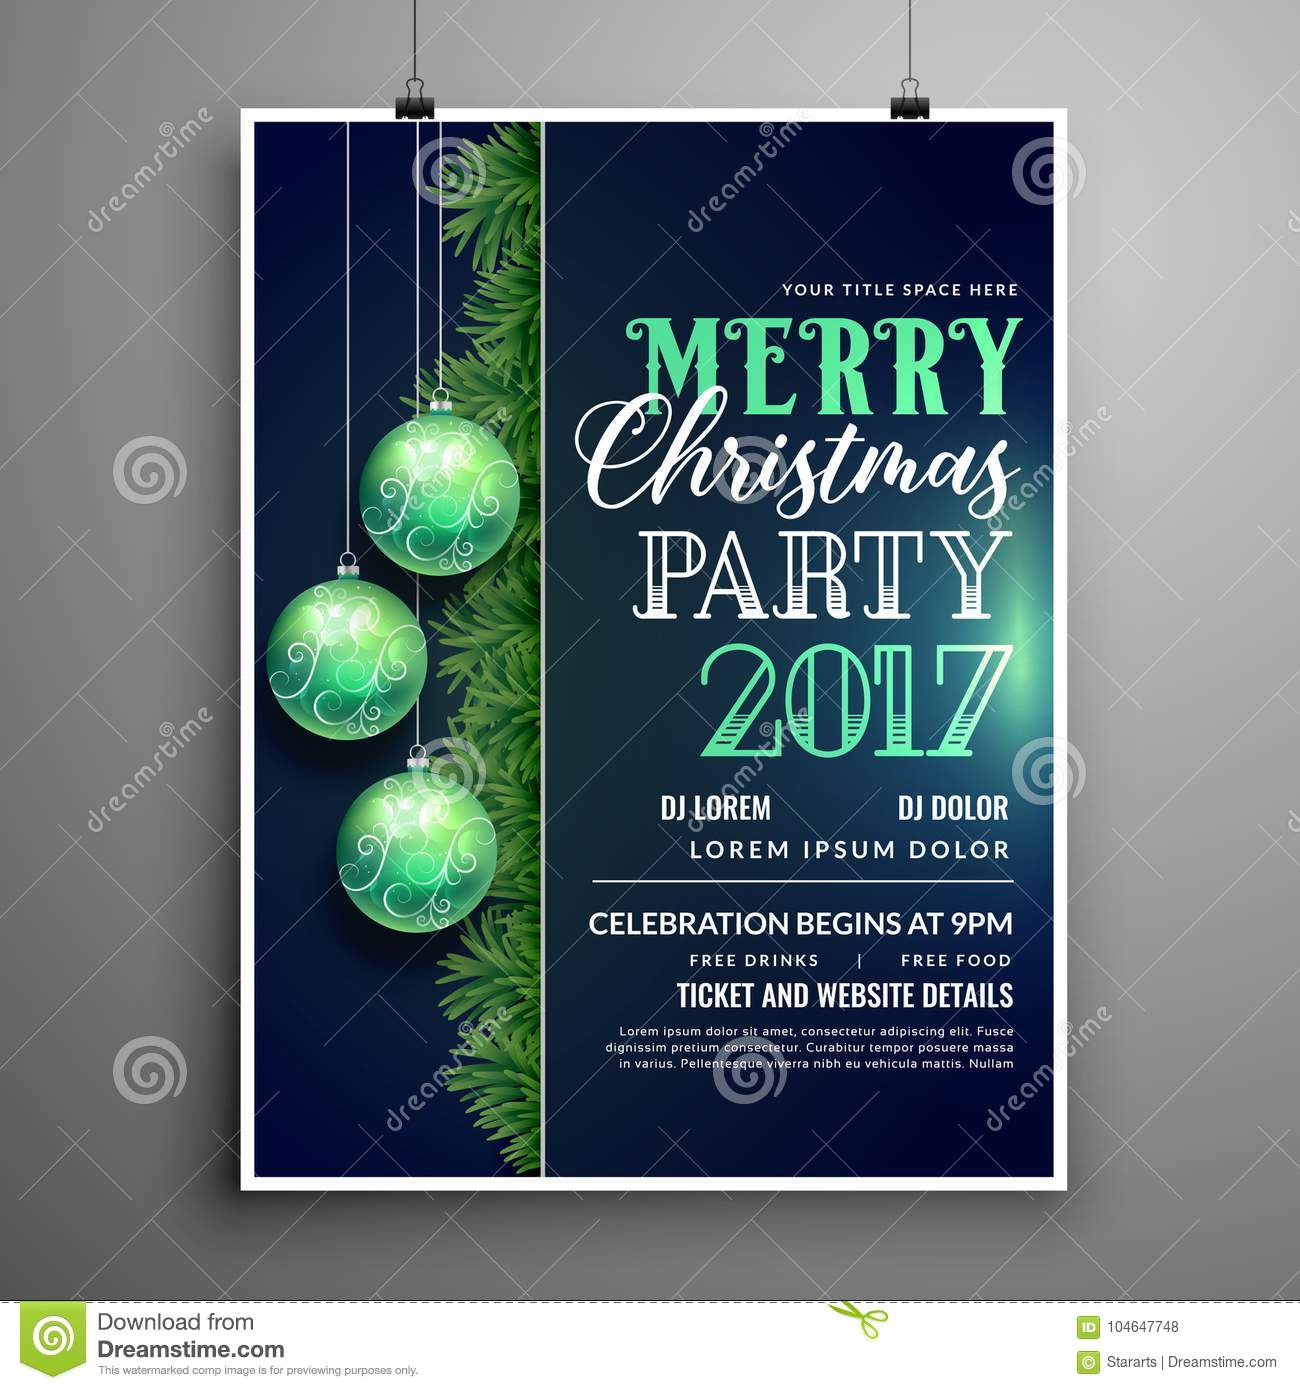 creative blue christmas party flyer design template with hanging